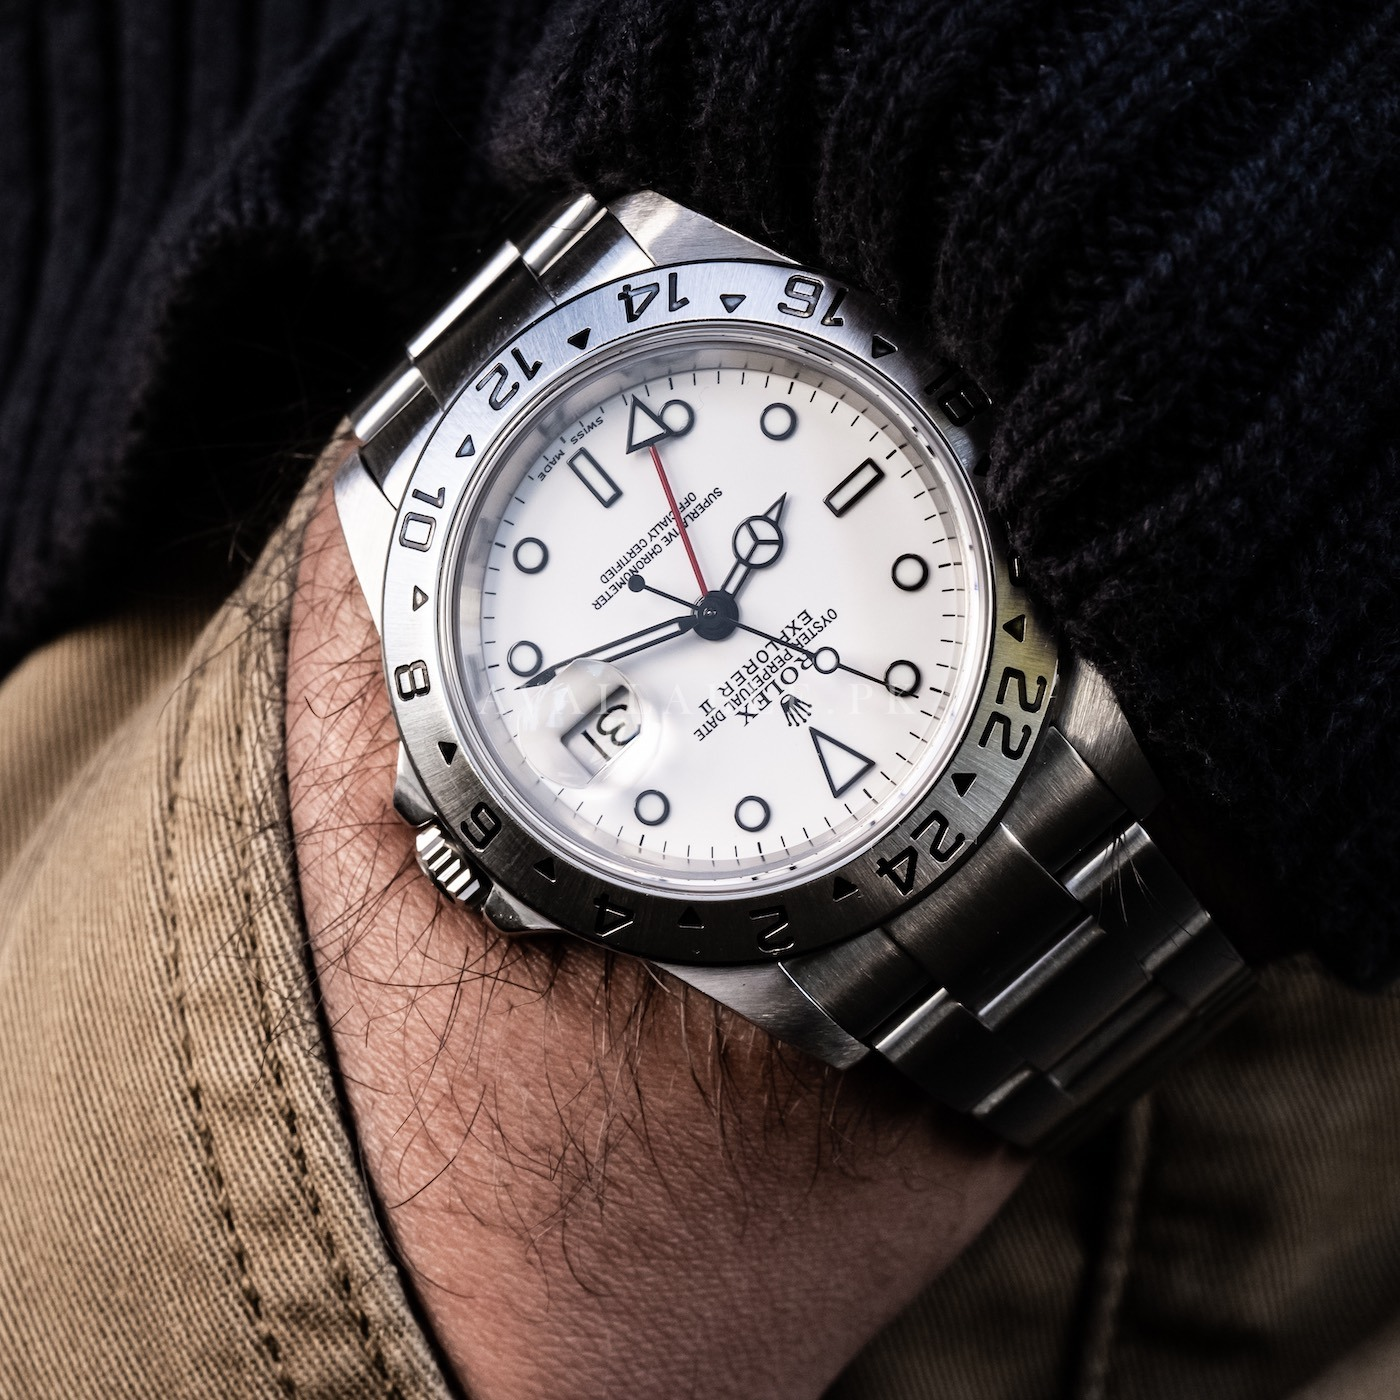 No Longer Made: Rolex Explorer II 16570 Watch